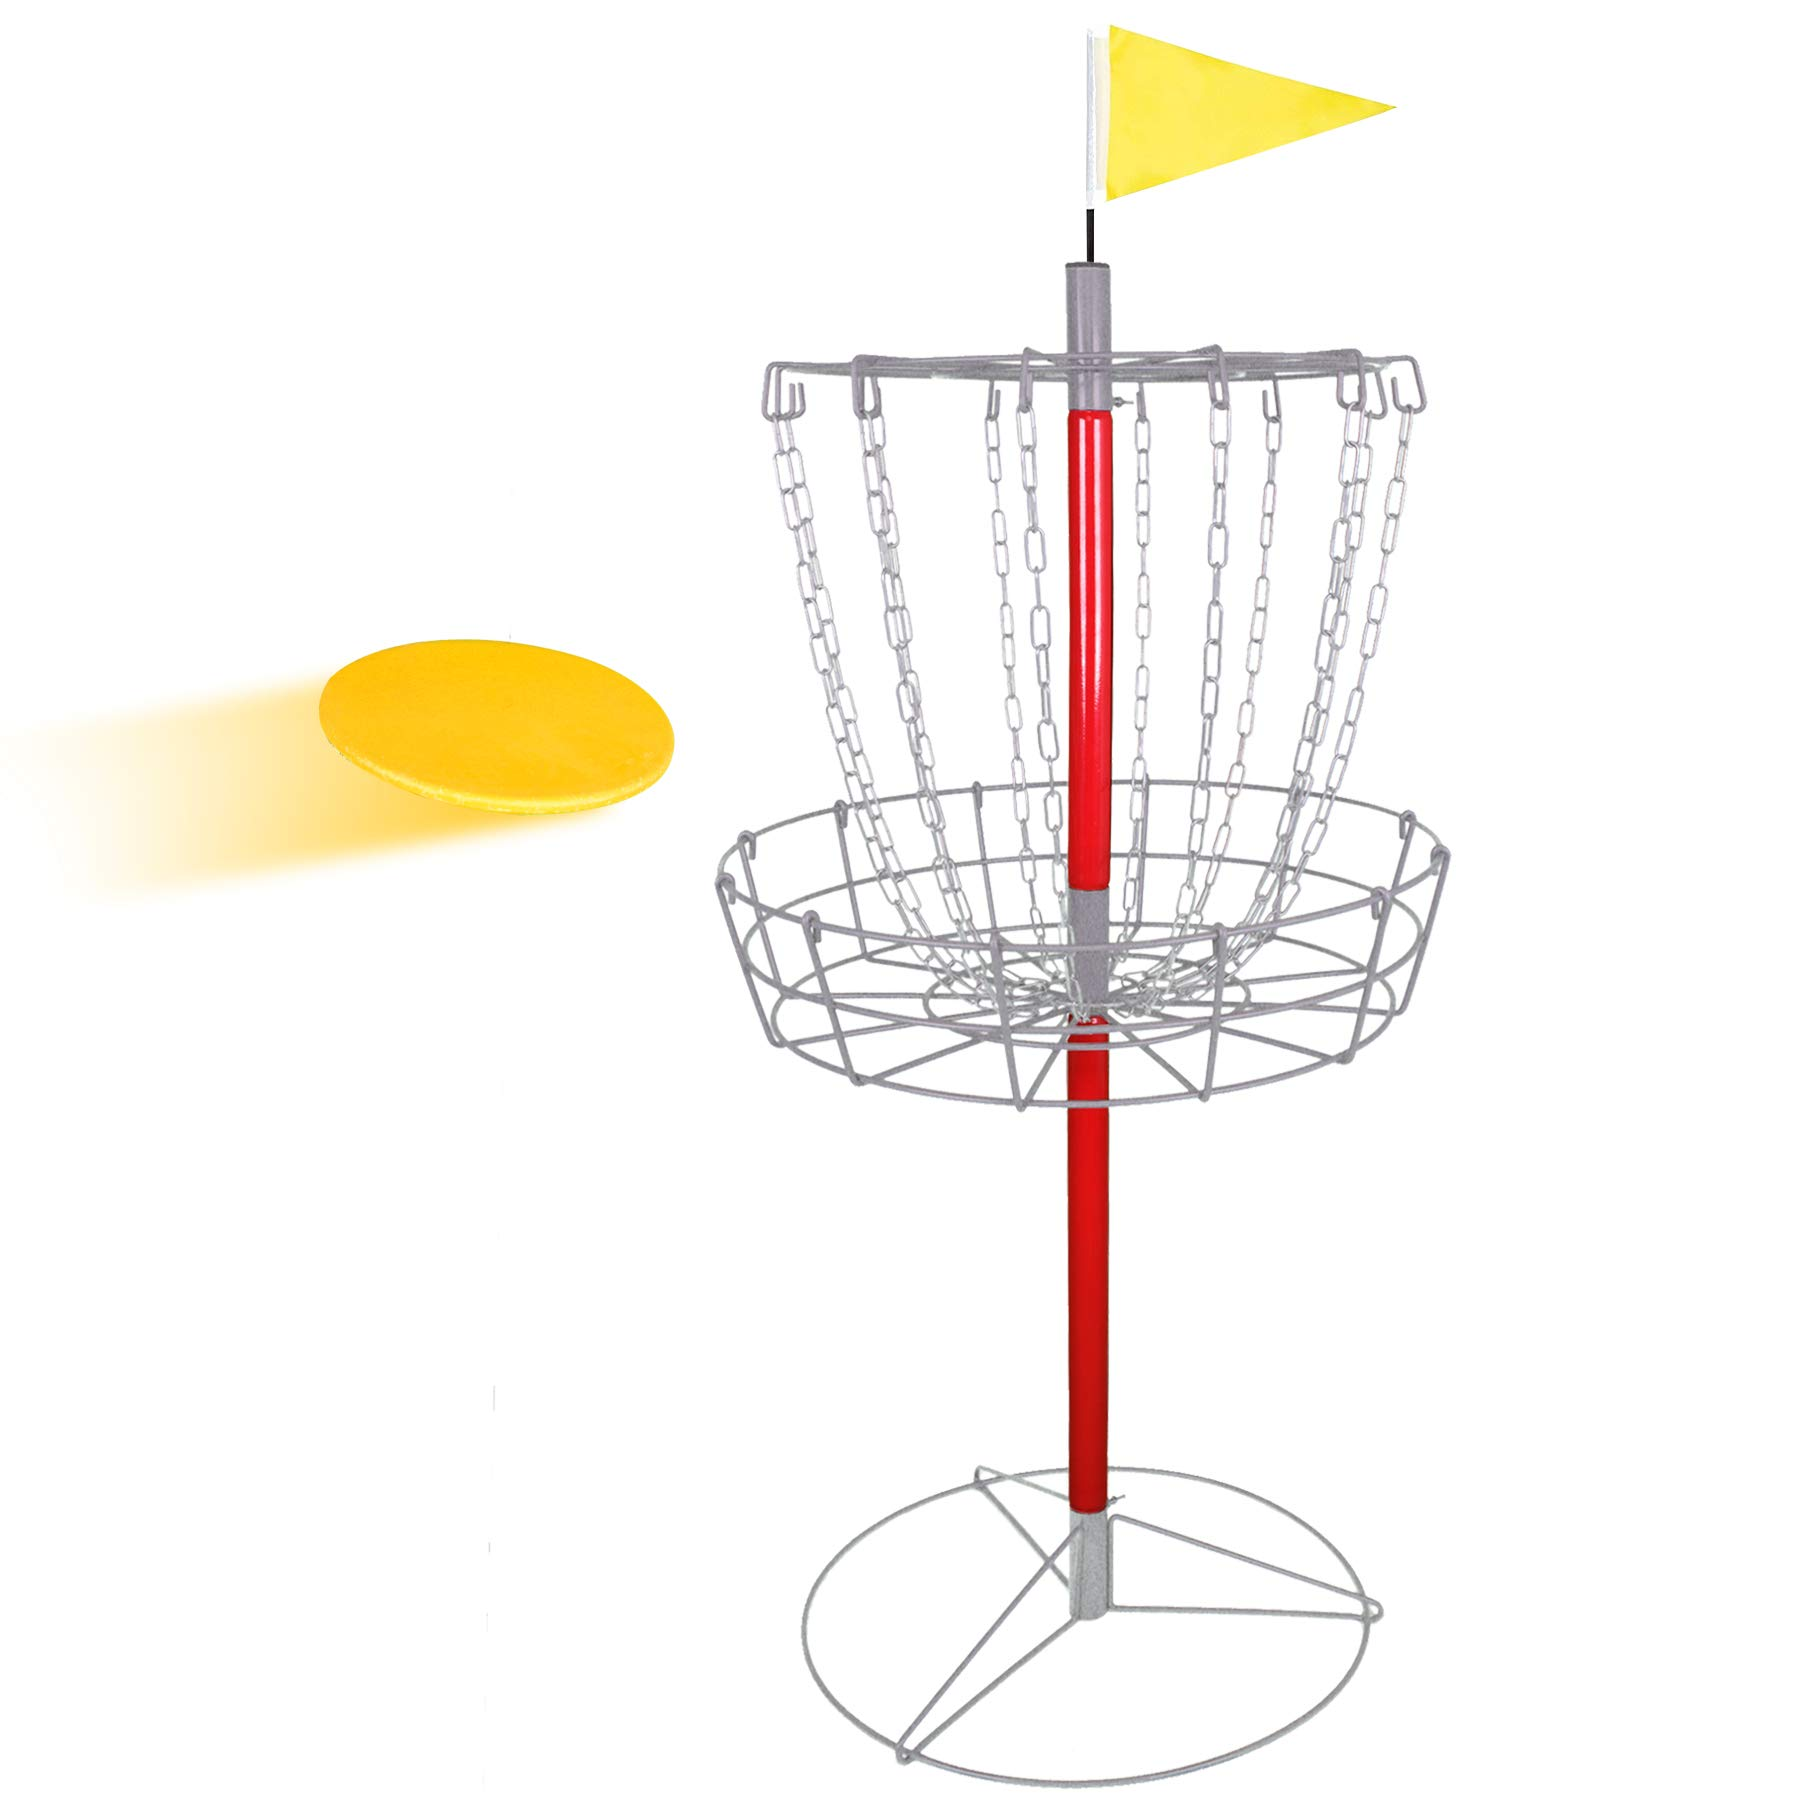 BBBuy Portable Disc Golf Basket, Lightweight Steel Practice Target Steel Frisbee Hole Disc Golf Goals Catcher by BBBuy